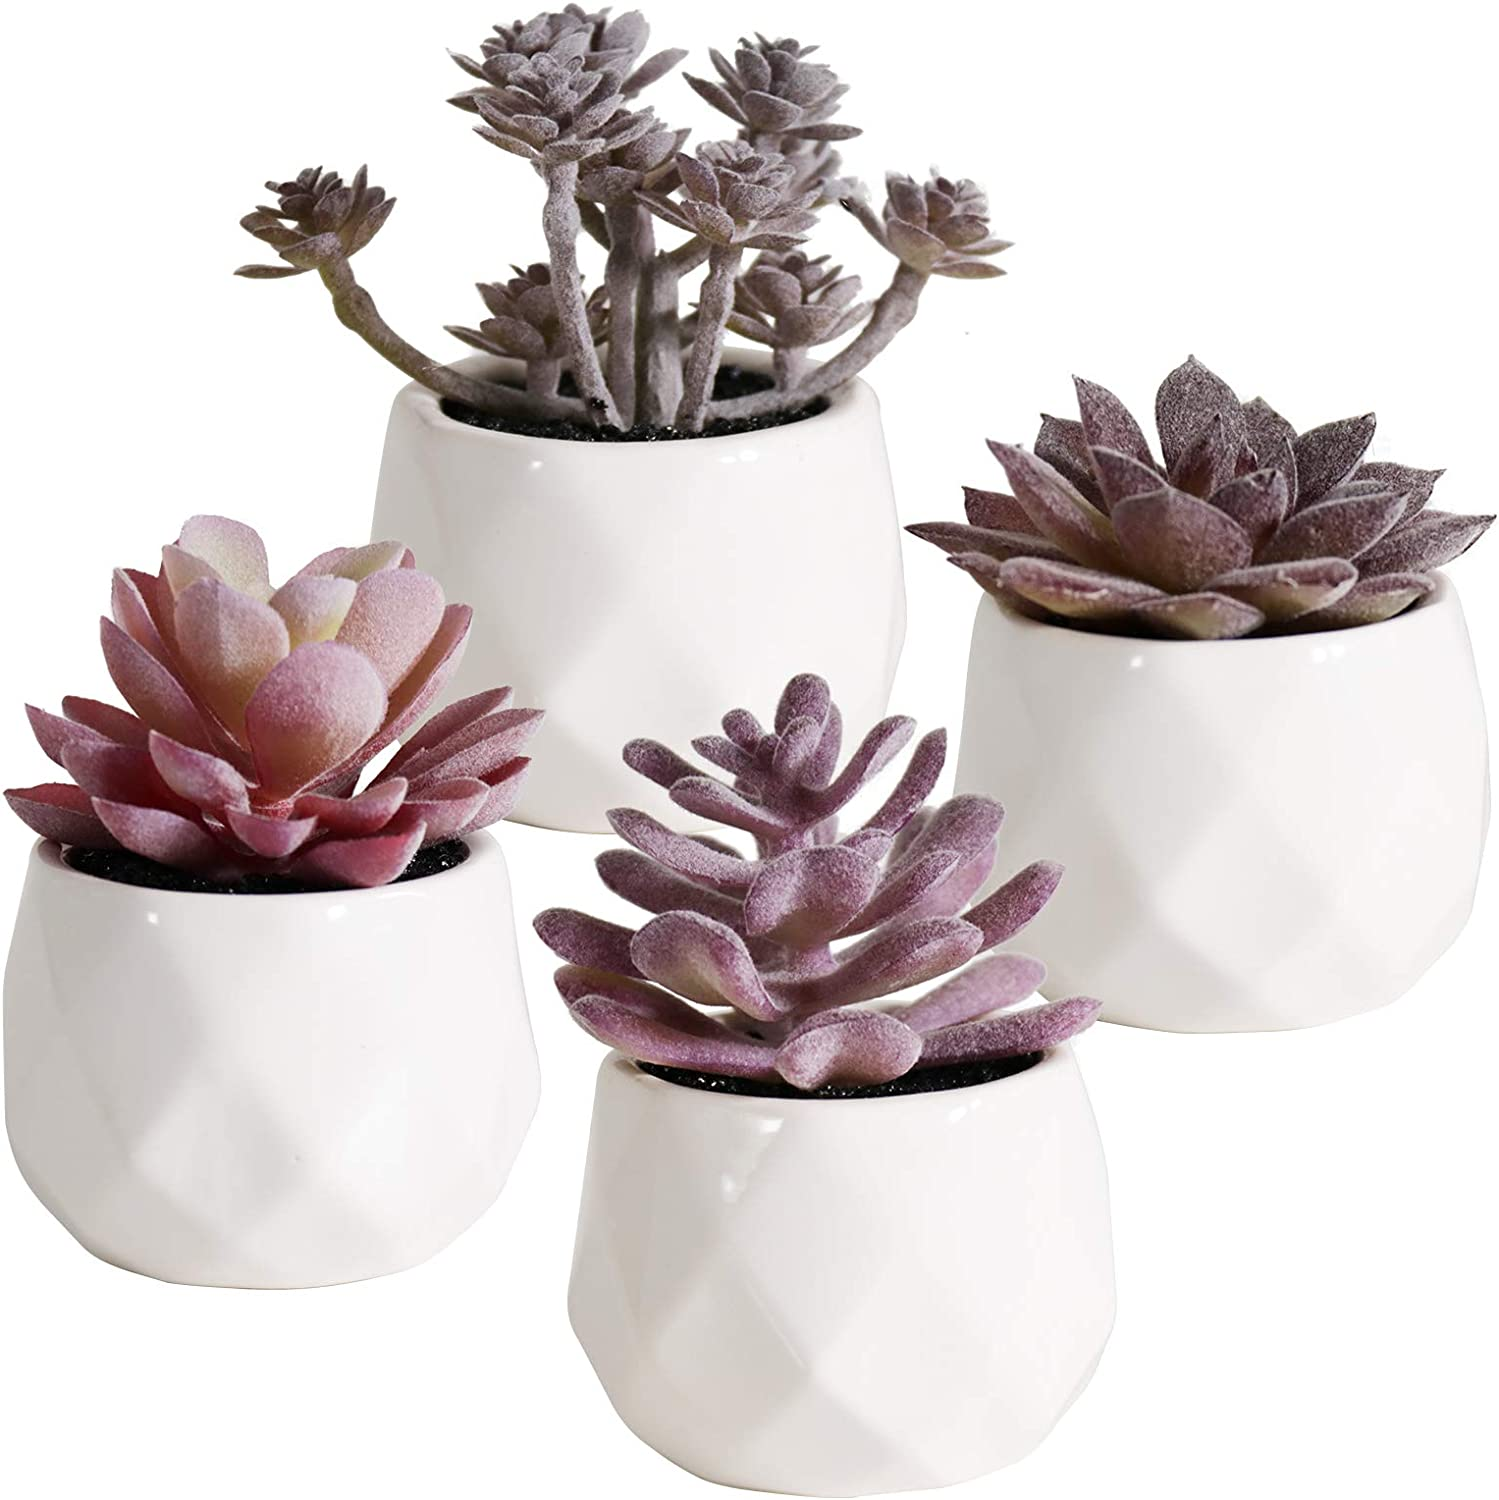 Artificial Plants Desk Fake Succulents Indoor Decor Office Room Decoration Small Tiny Realistic Plants in White Ceramic Potted (Purple-4)